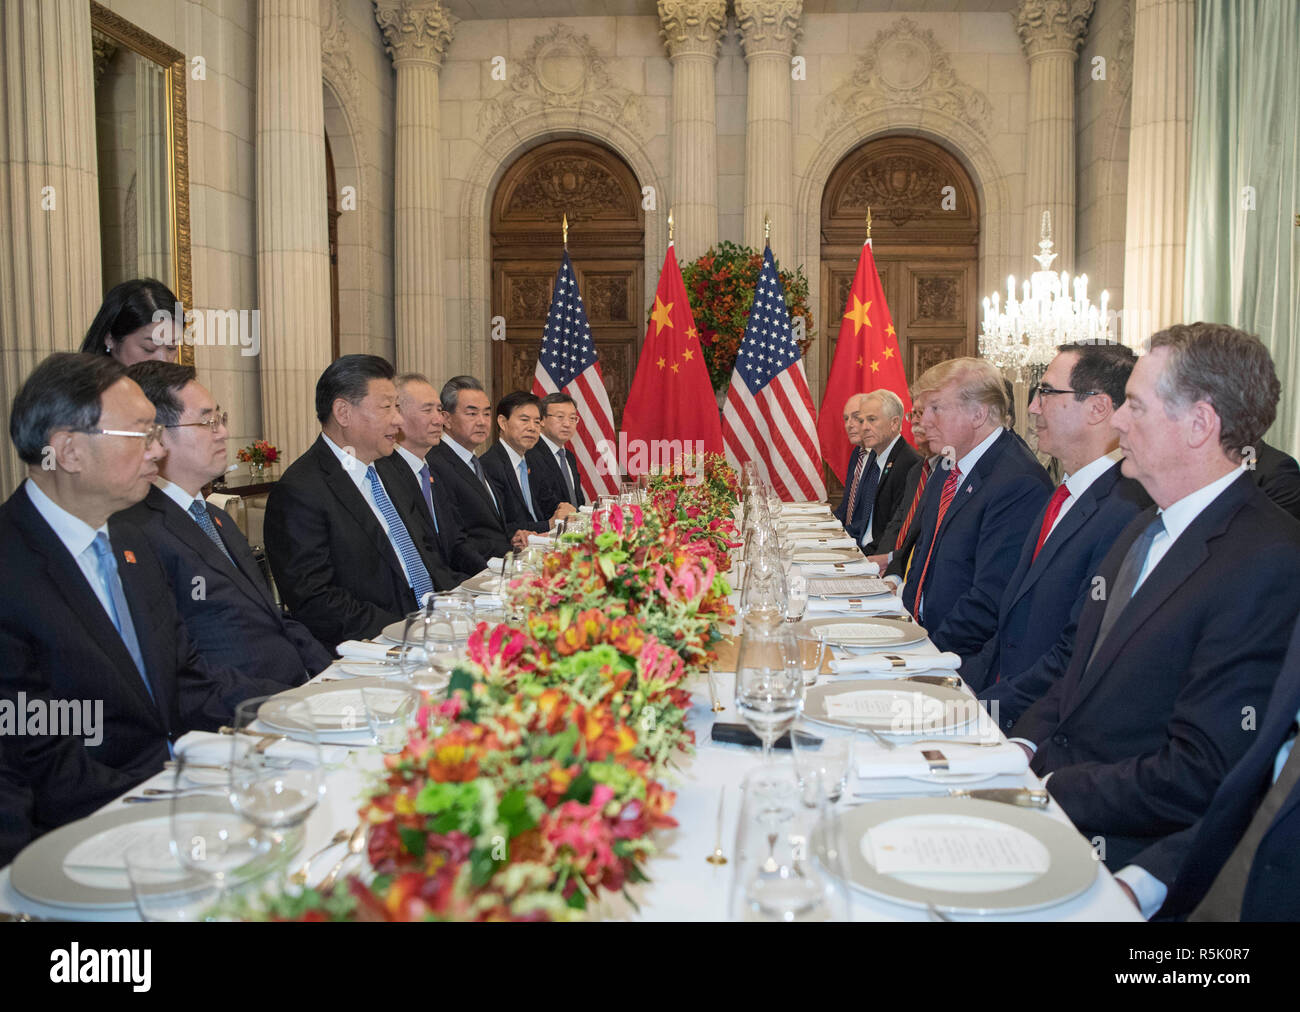 Buenos Aires, Argentina. 1st Dec, 2018. Chinese President Xi Jinping speaks during a working dinner with his U.S. counterpart Donald Trump in Buenos Aires, Argentina, Dec. 1, 2018. Credit: Li Xueren/Xinhua/Alamy Live News - Stock Image